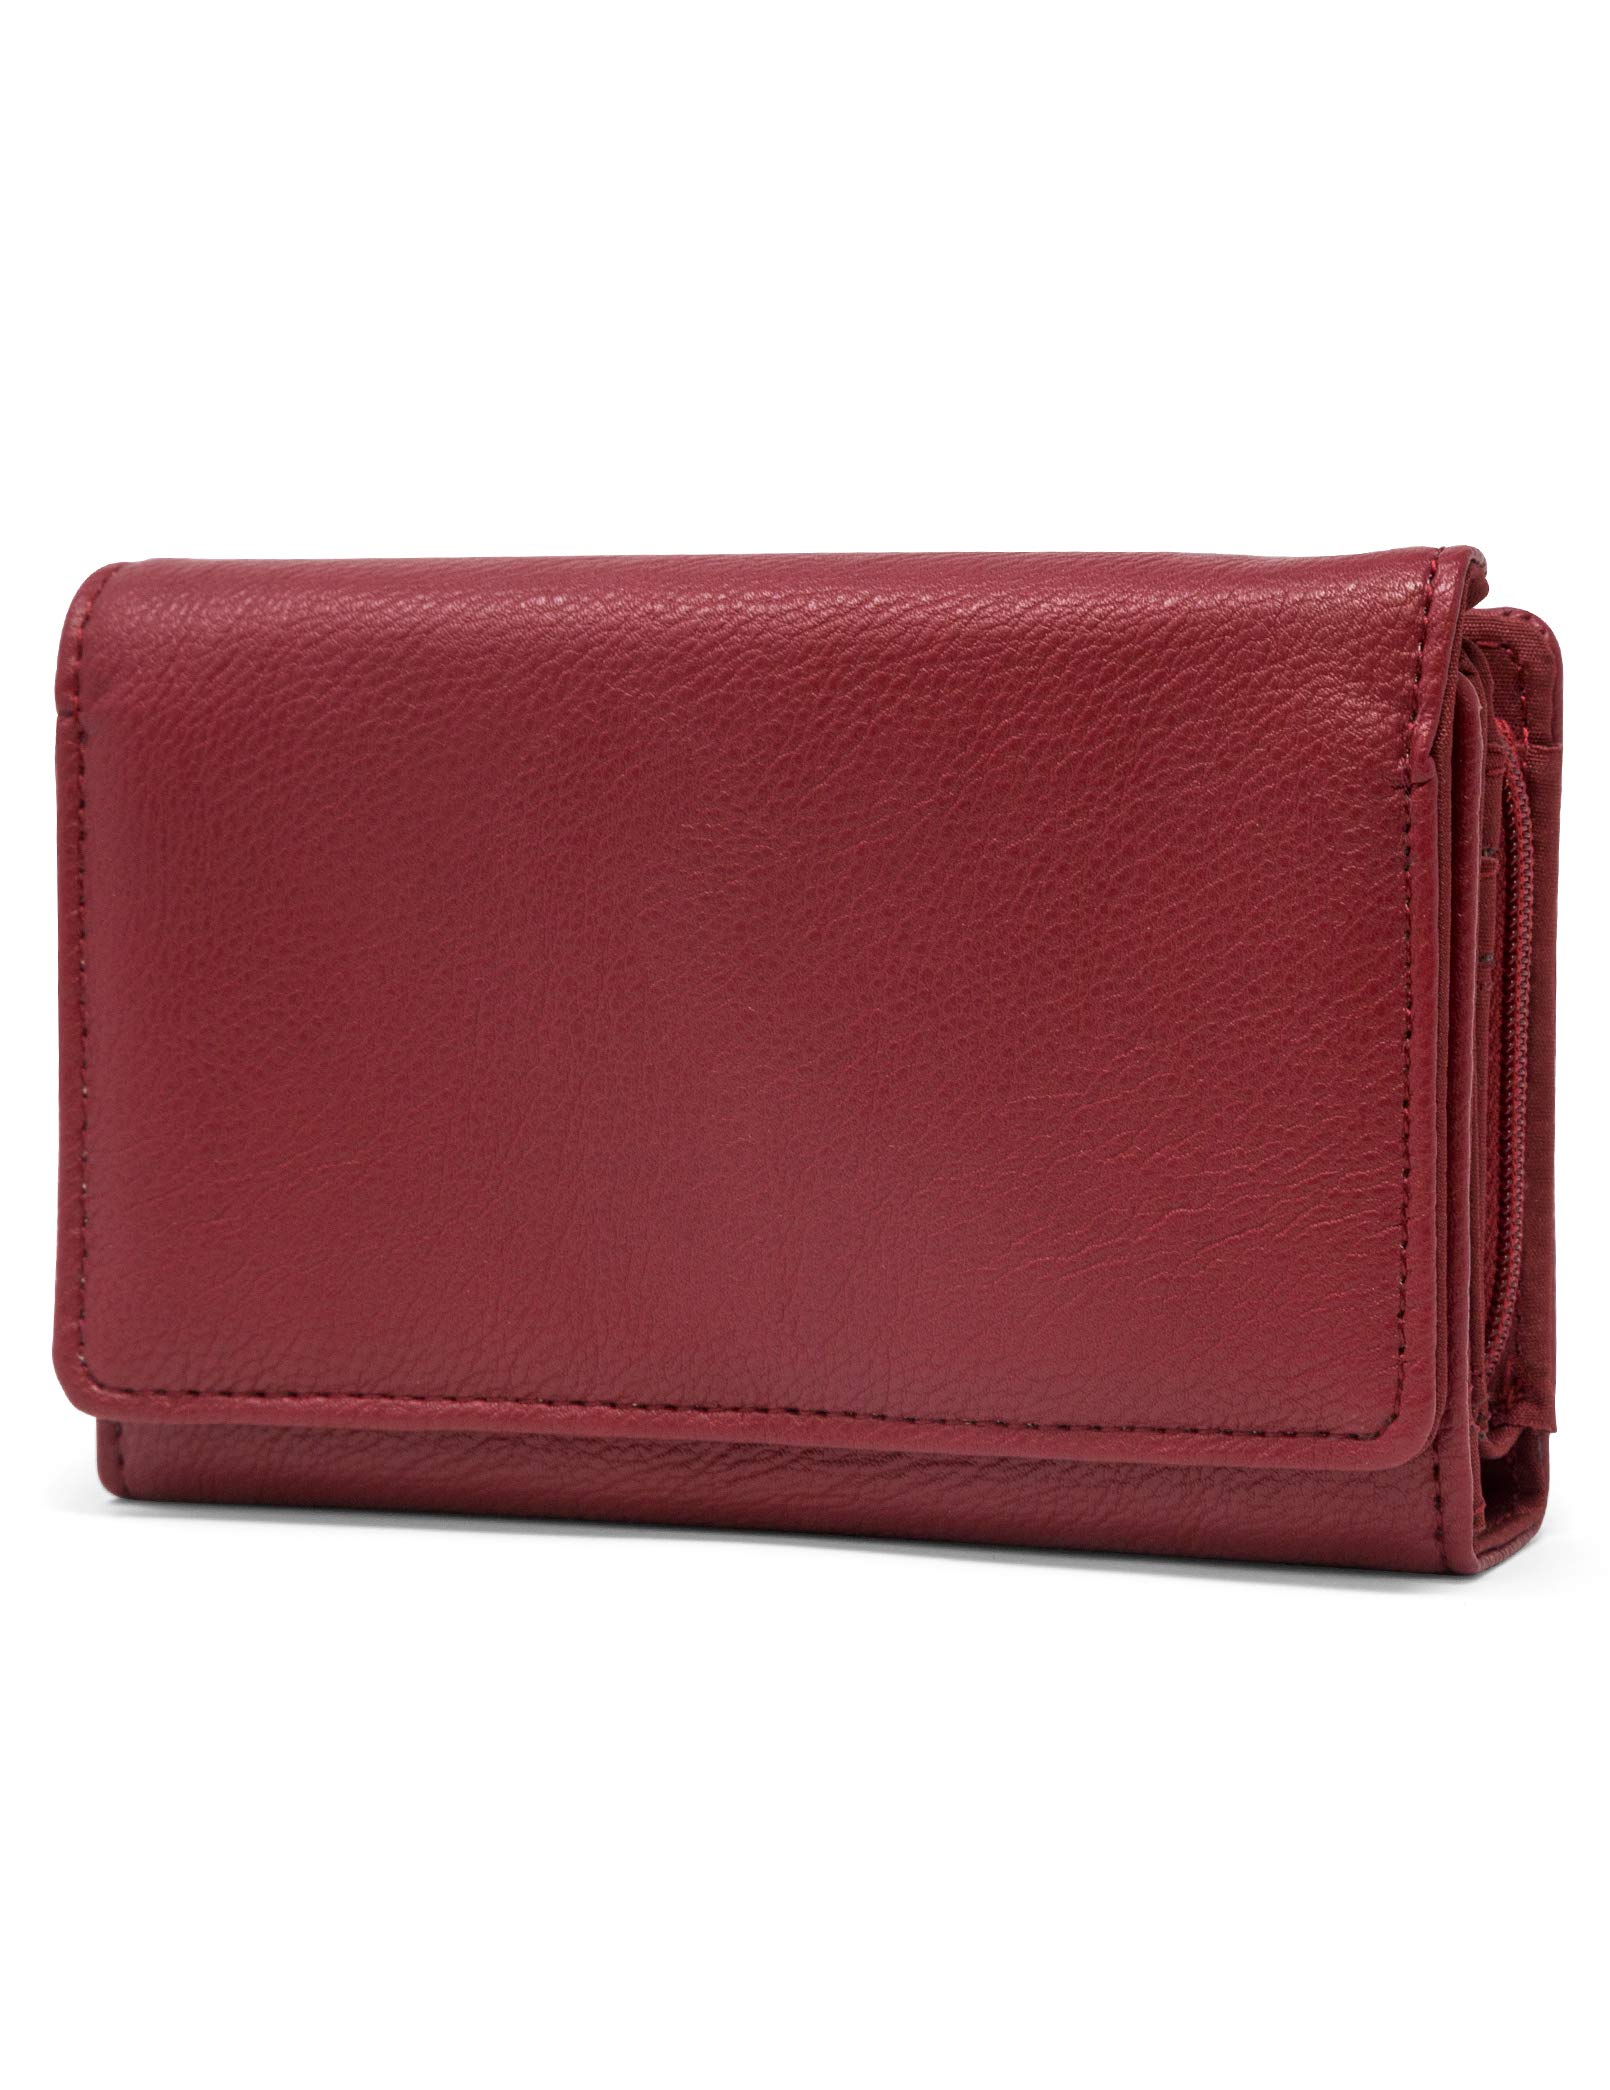 Mundi Small Womens RFID Blocking Wallet Compact Trifold Safe Protection Clutch With Change Purse ((Red))